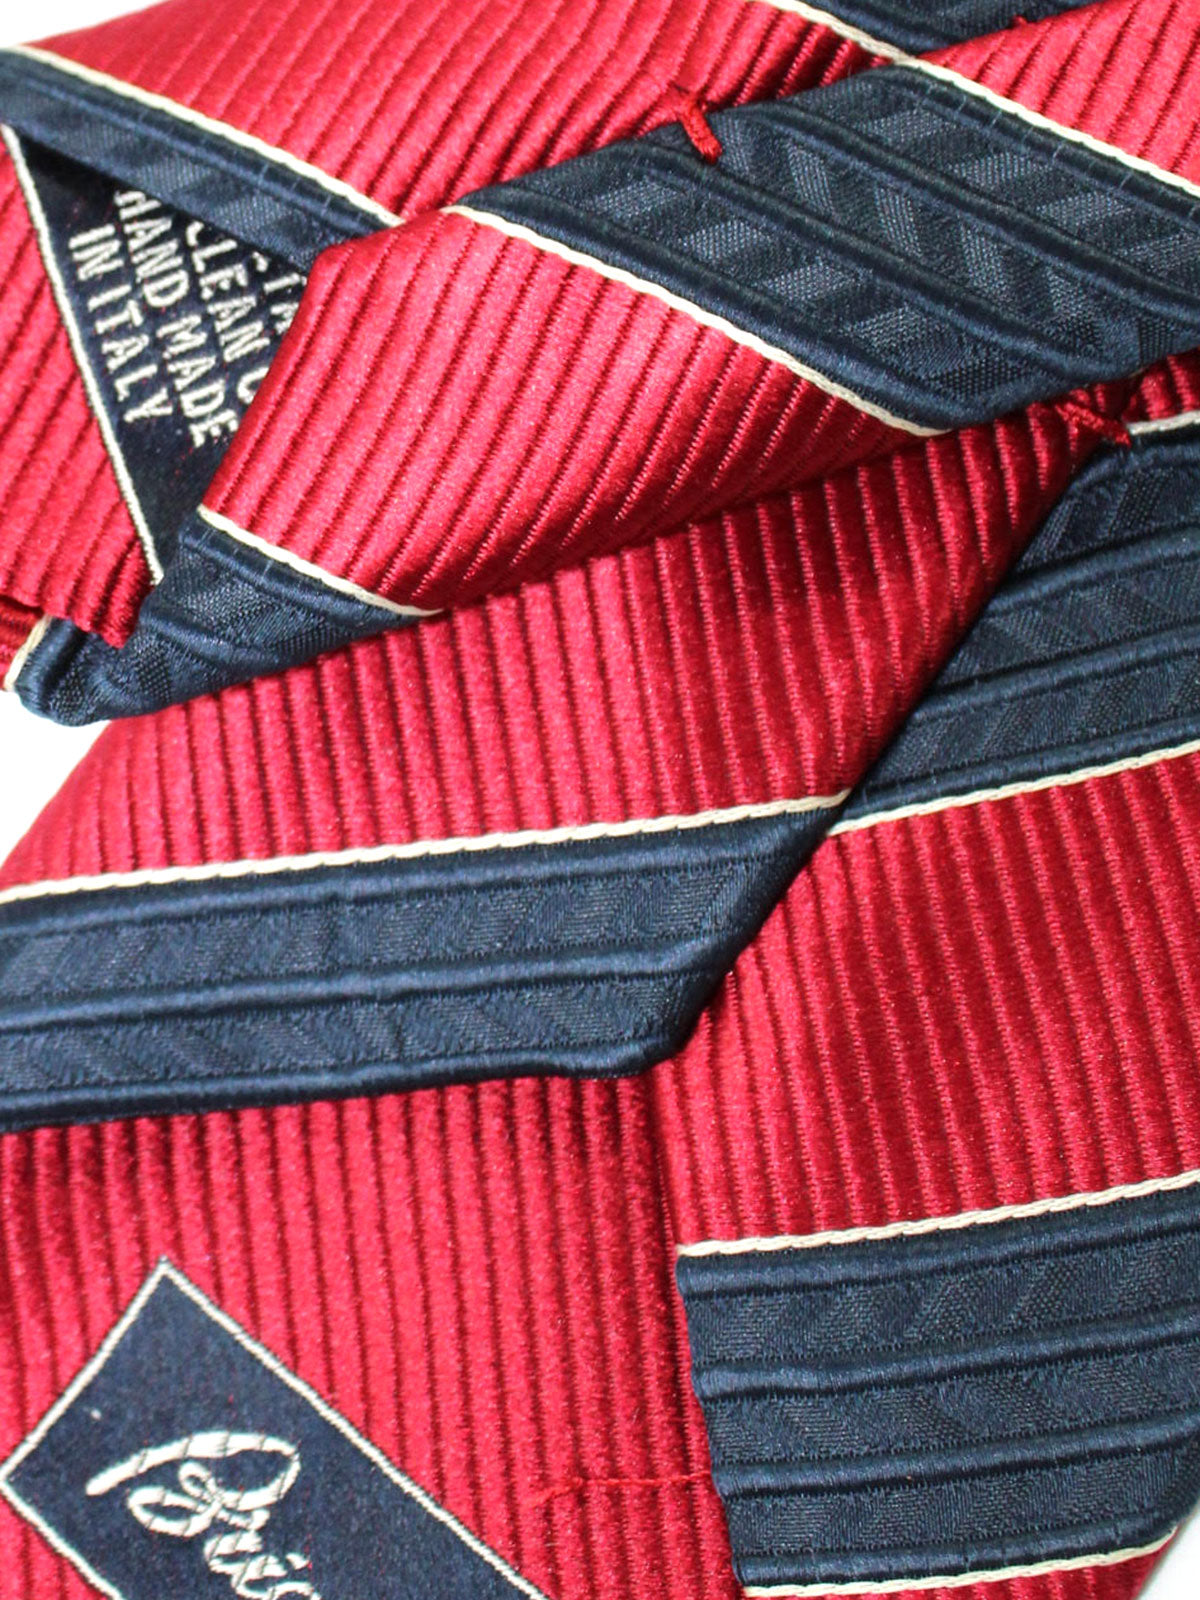 Brioni Silk Tie Dark Blue Red Stripes Design